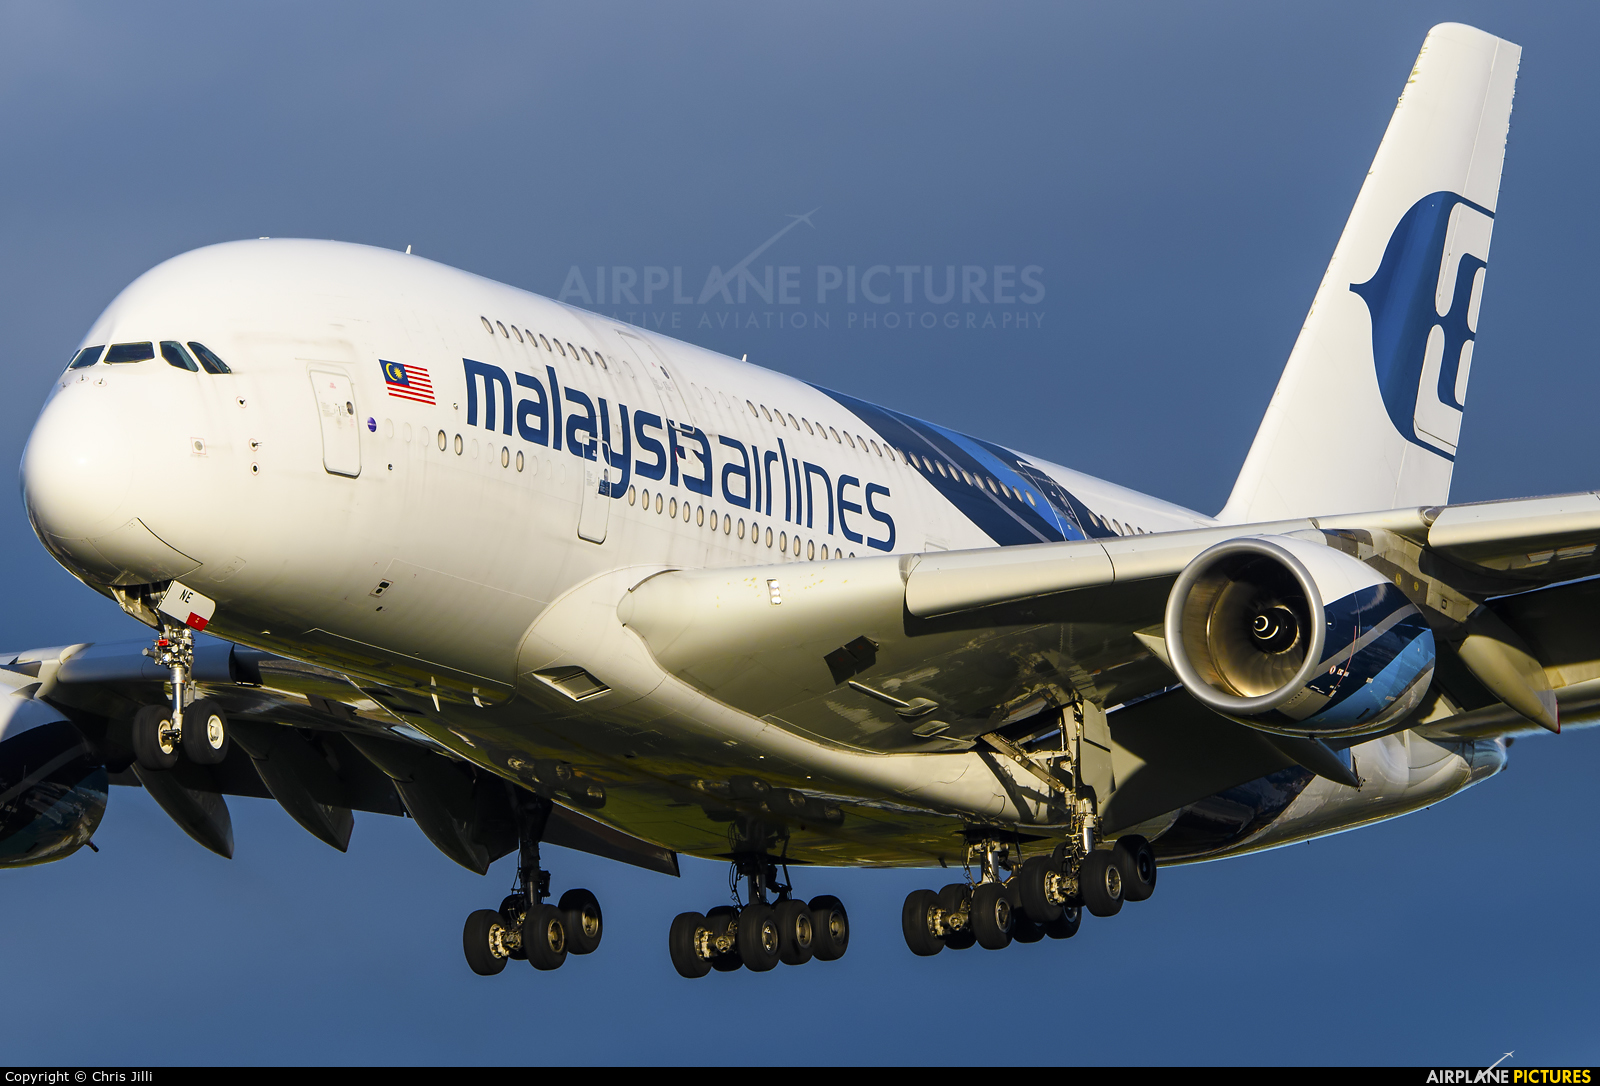 Malaysia Airlines 9M-MNE aircraft at London - Heathrow